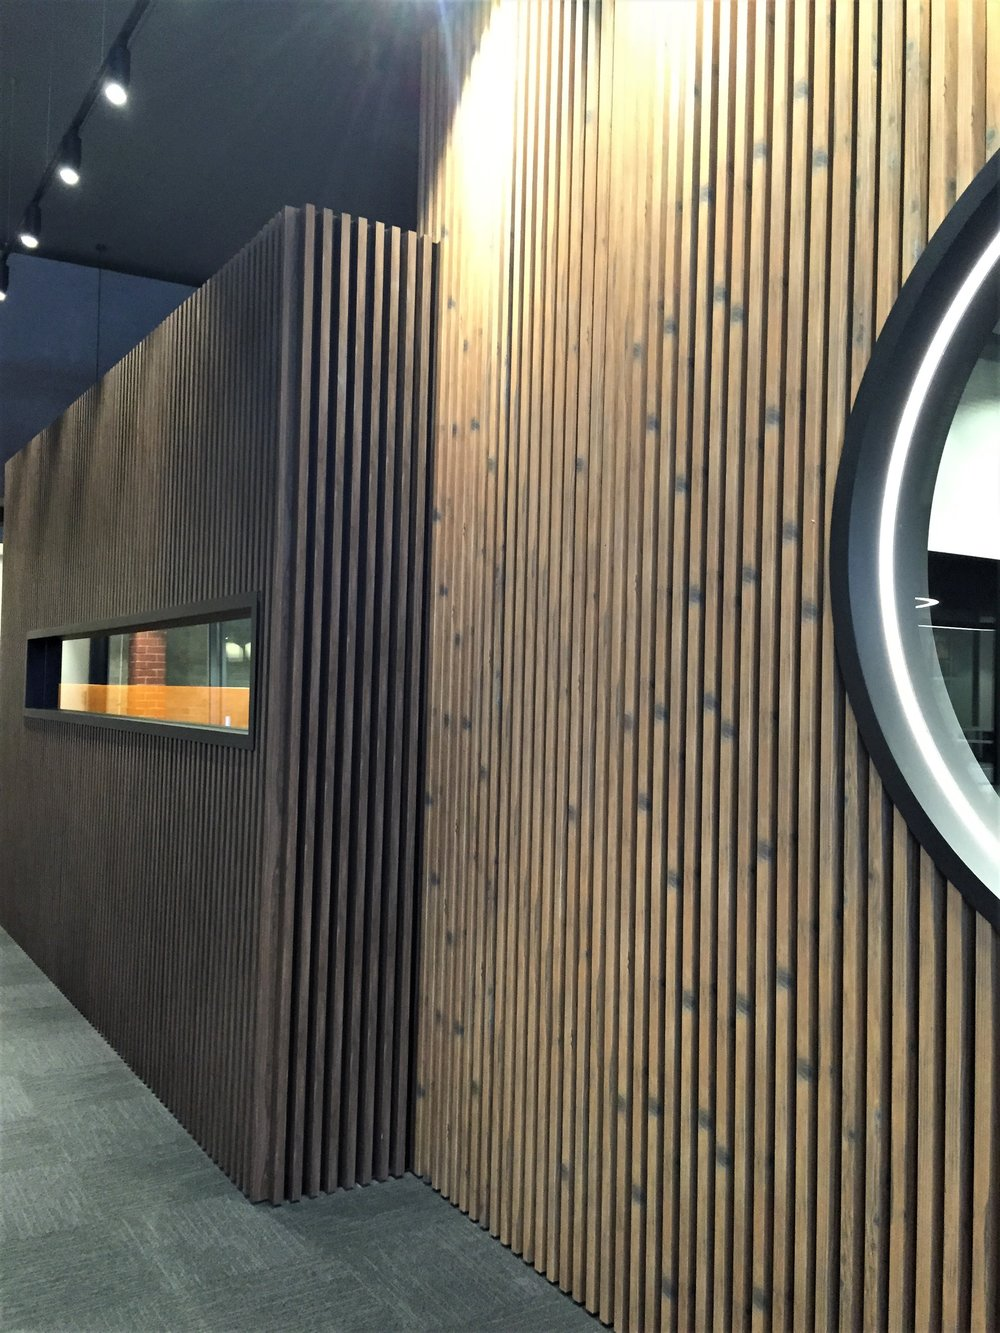 Boardroom Fitout - Richmond VIC Ever Art Wood® battens - Koshi 30x50mm standard hollow section in Nacyuraru (foreground) & Buraun Eboni (background)